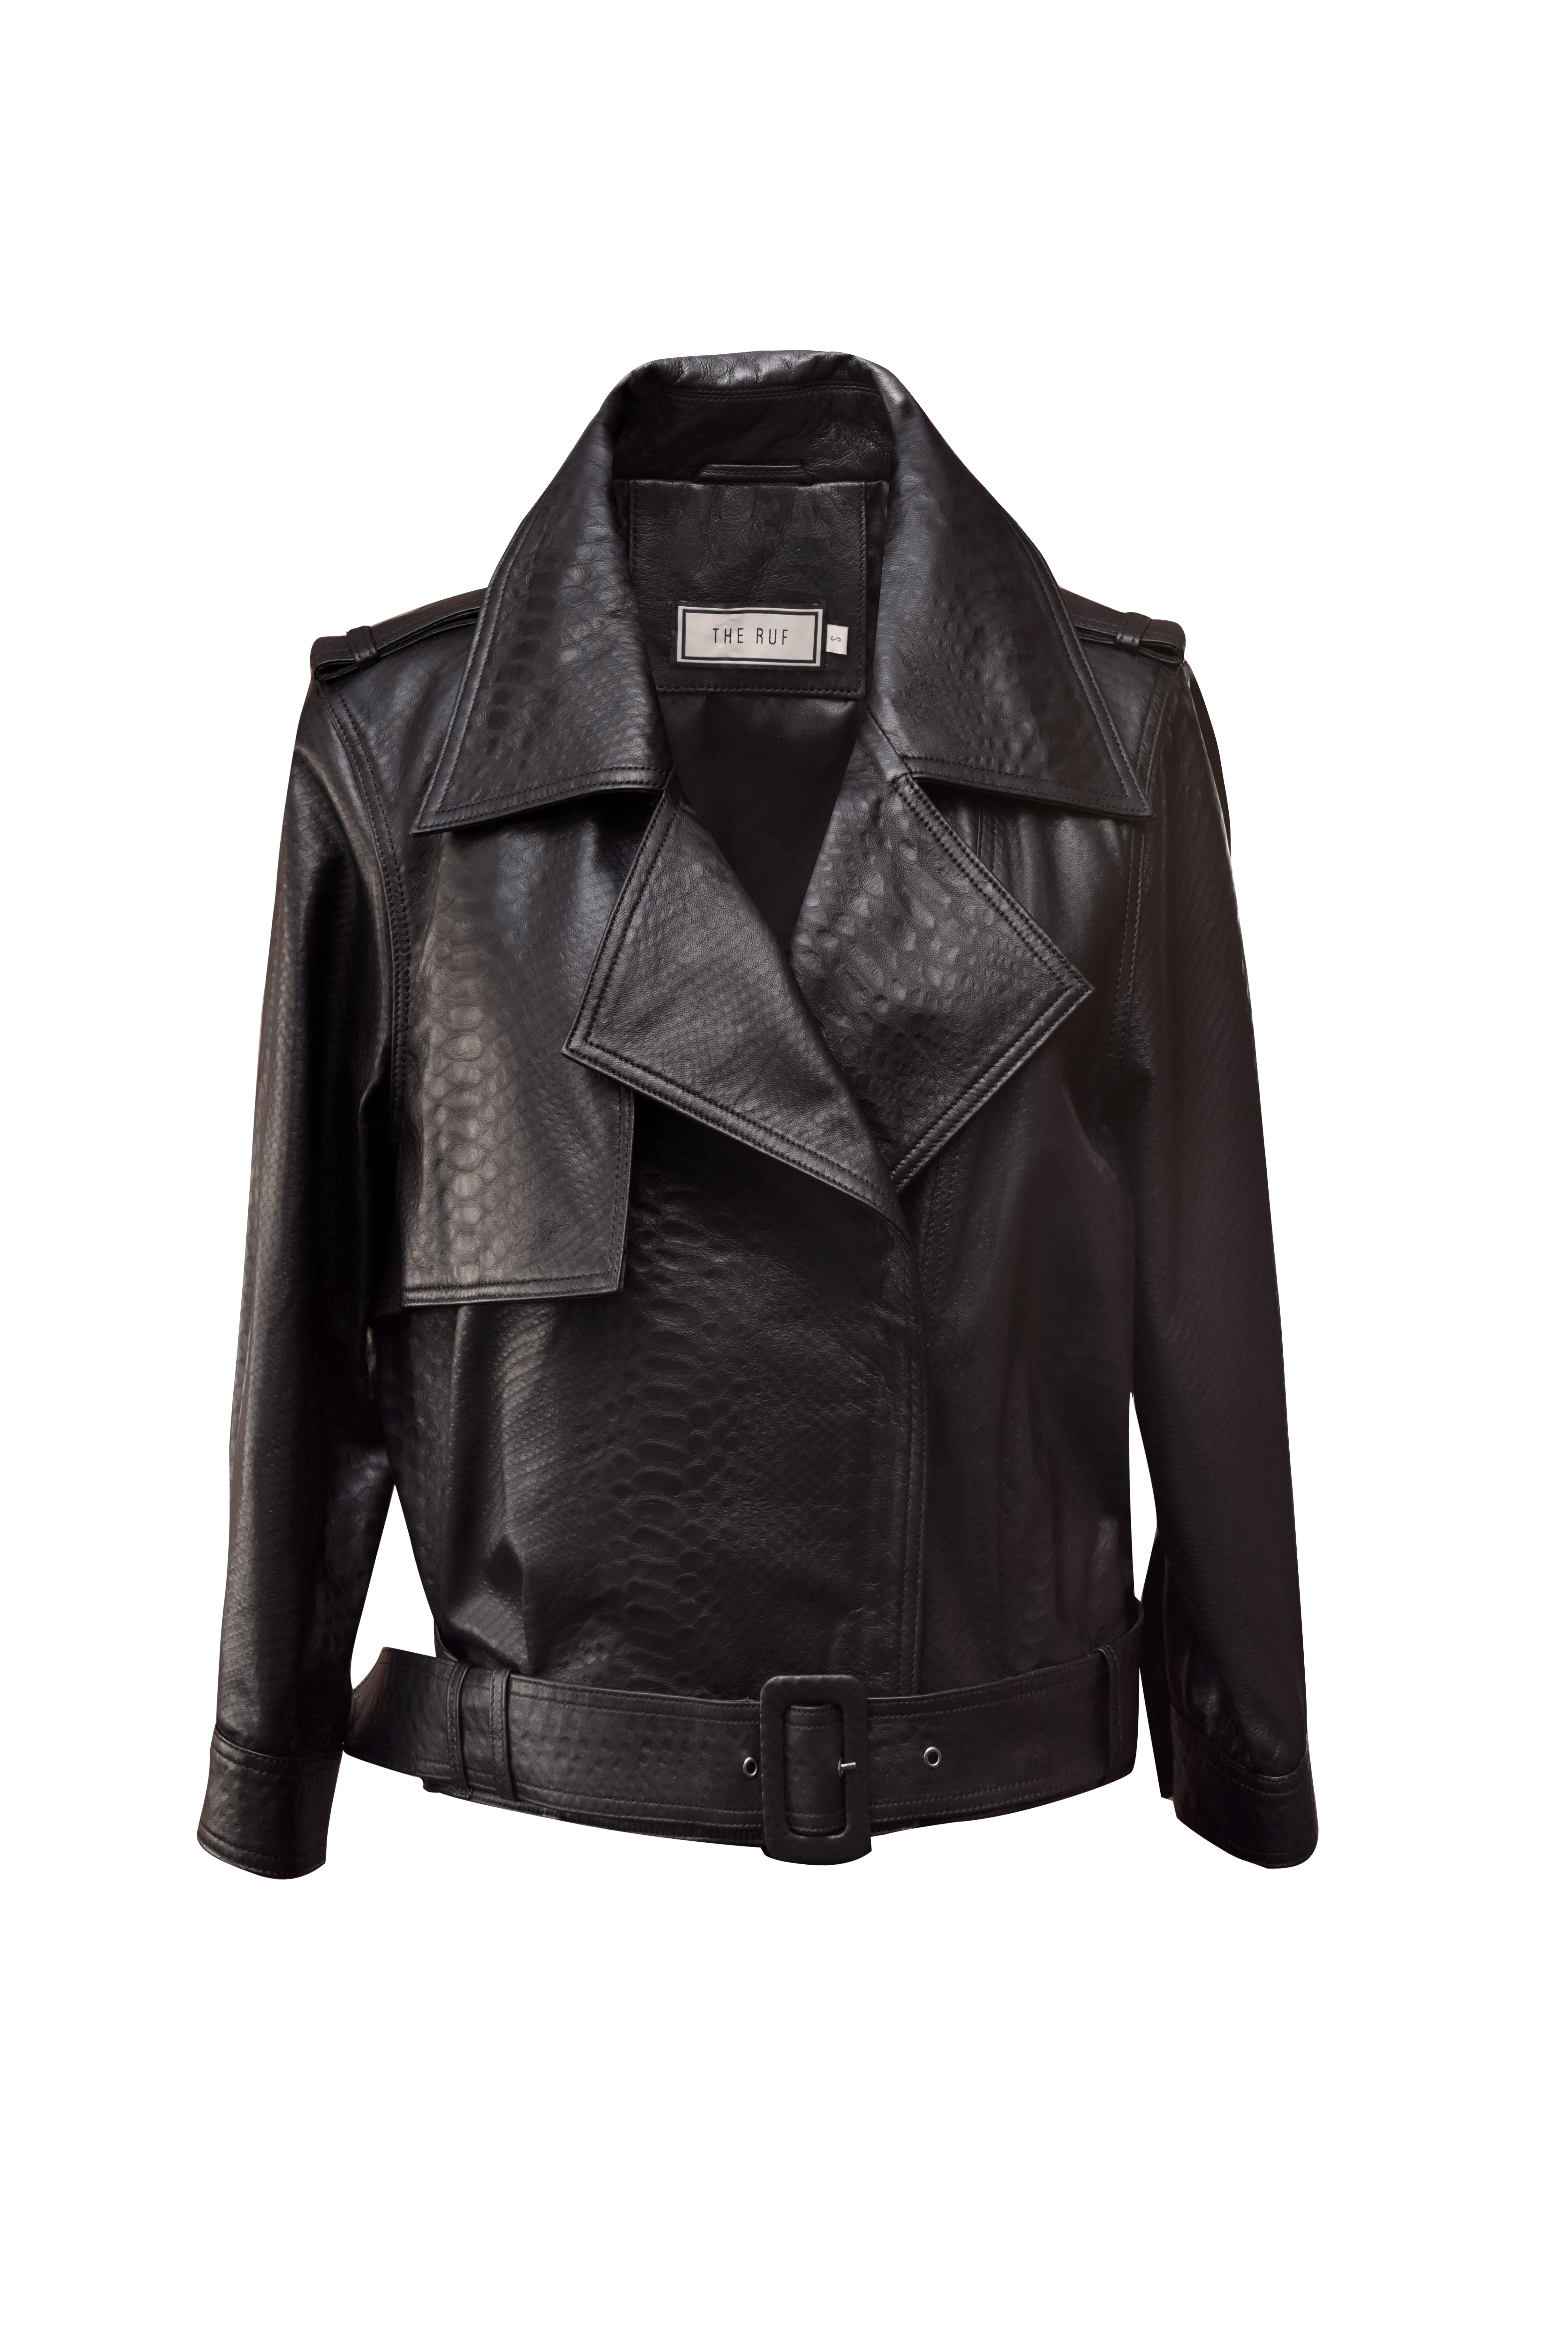 Python-Embossed Leather Jacket - Black by The Ruf on curated-crowd.com